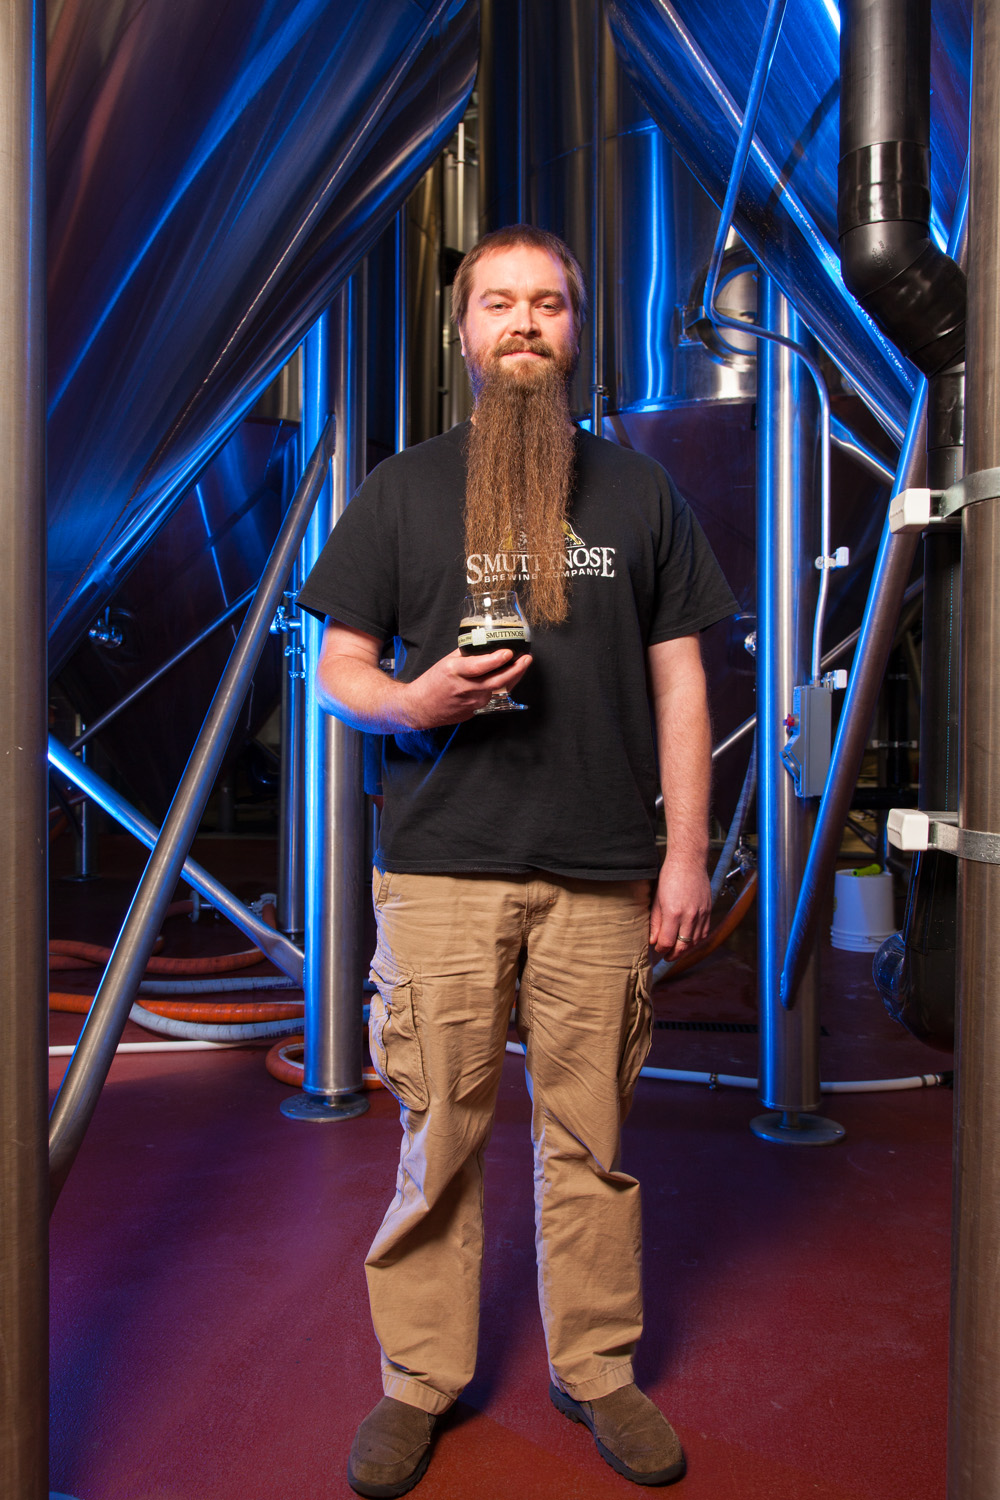 Greg Blanchard, Brewery Manager Smuttynose Brewing Co. Hampton, NH Established in 1994